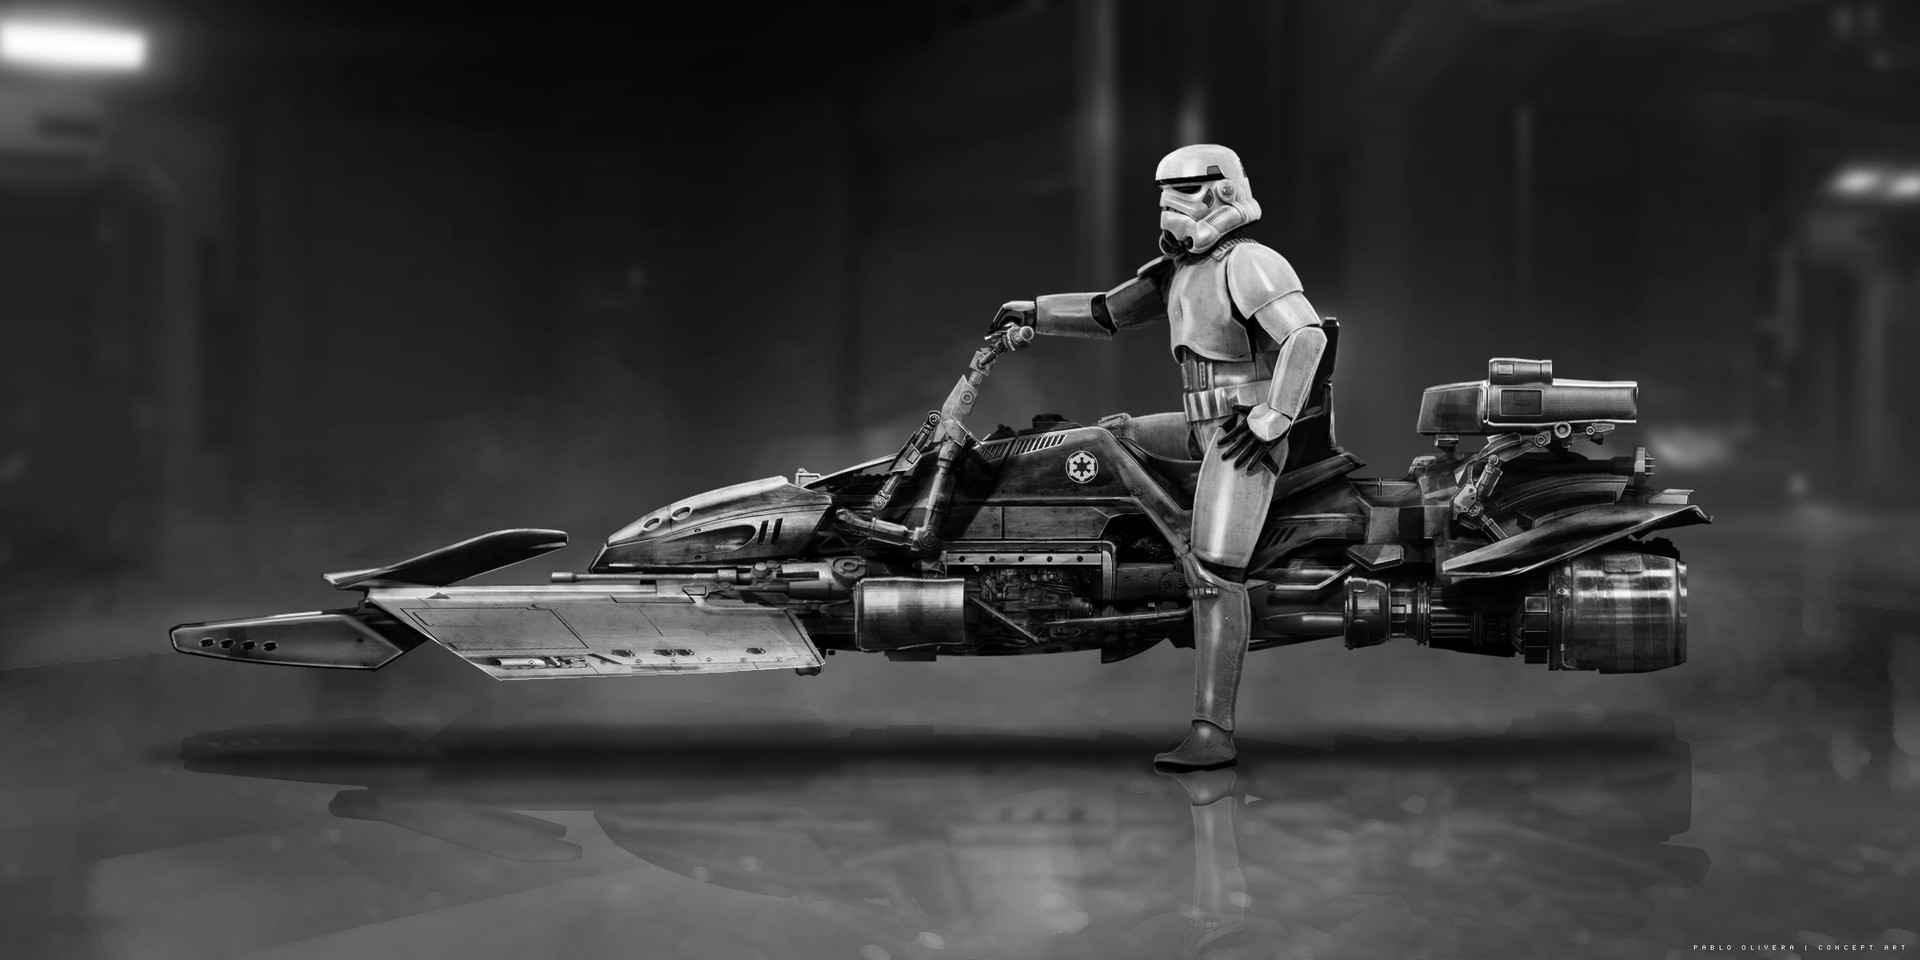 Pablo olivera concept 02 speeder bike star wars boba fett vista lateral v02 black